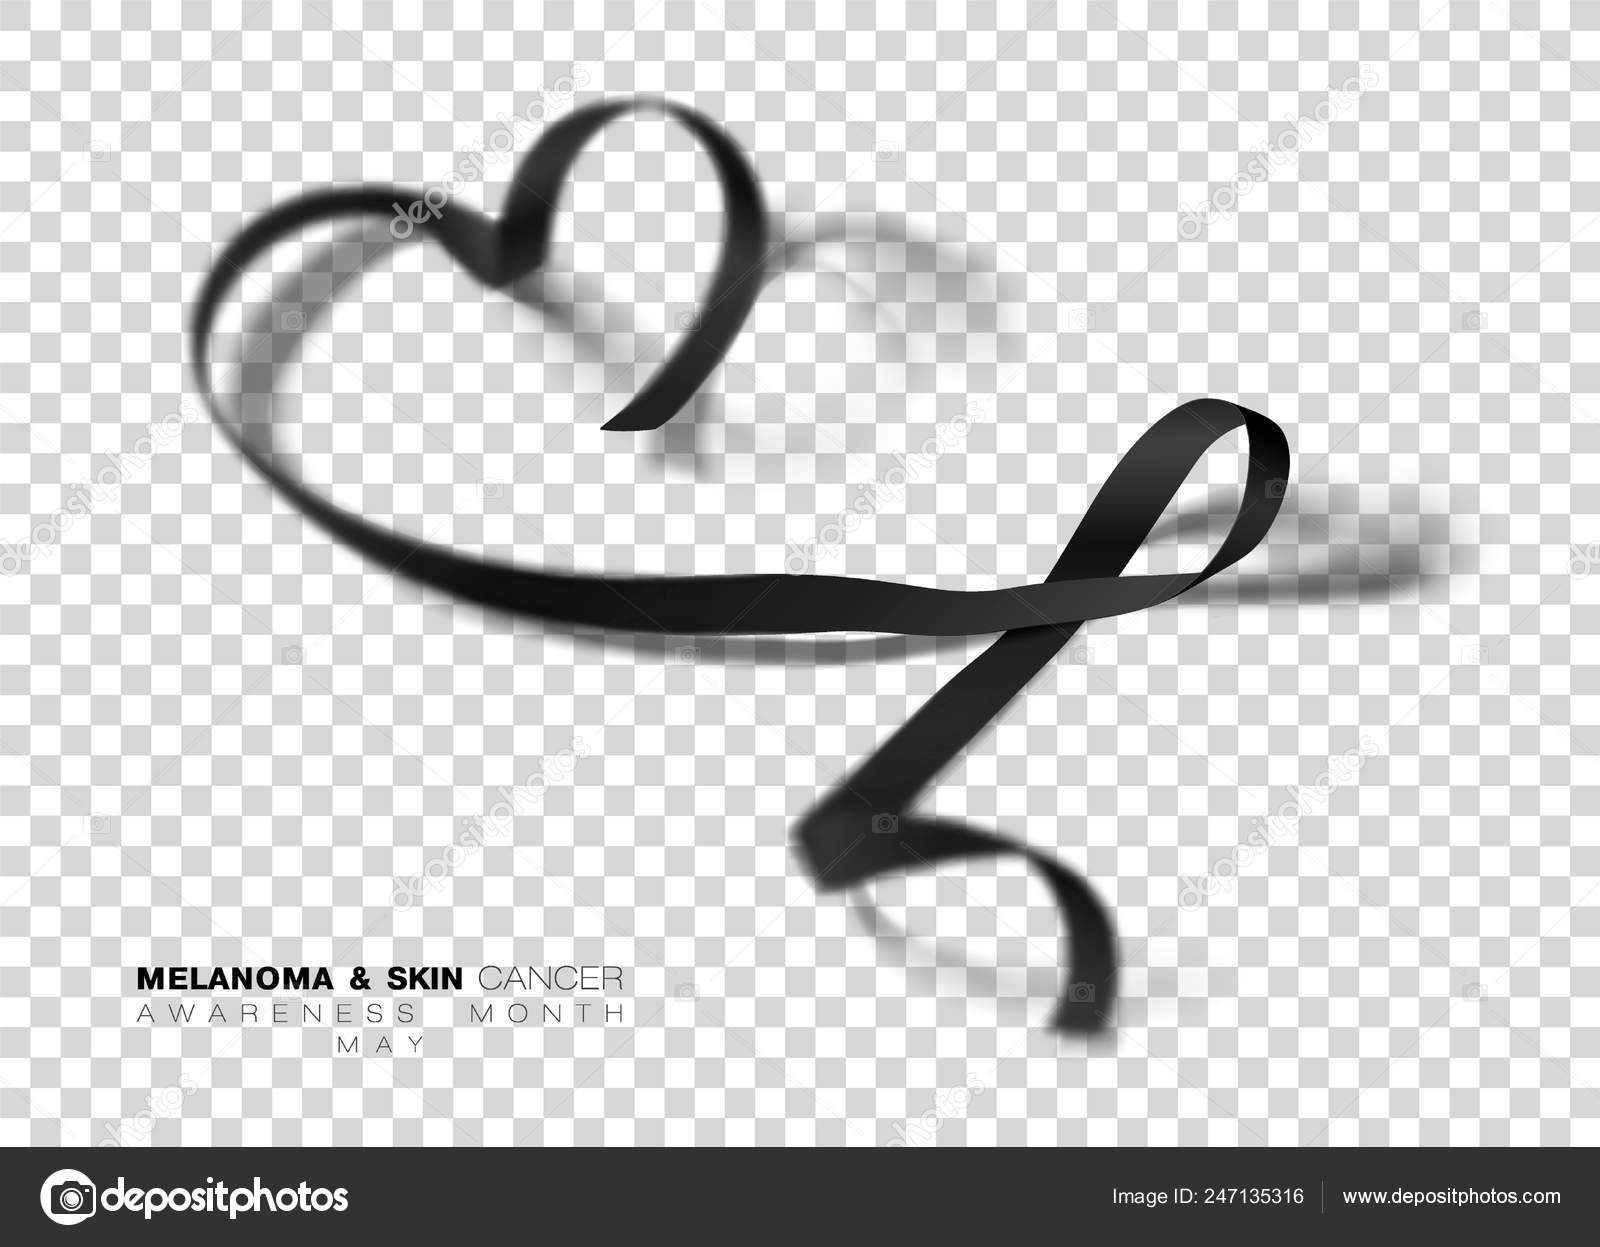 Melanoma And Skin Cancer Awareness Month Black Color Ribbon Isolated On Transparent Background Vector Design Template For Poster Stock Vector C Irkus Life Gmail Com 247135316